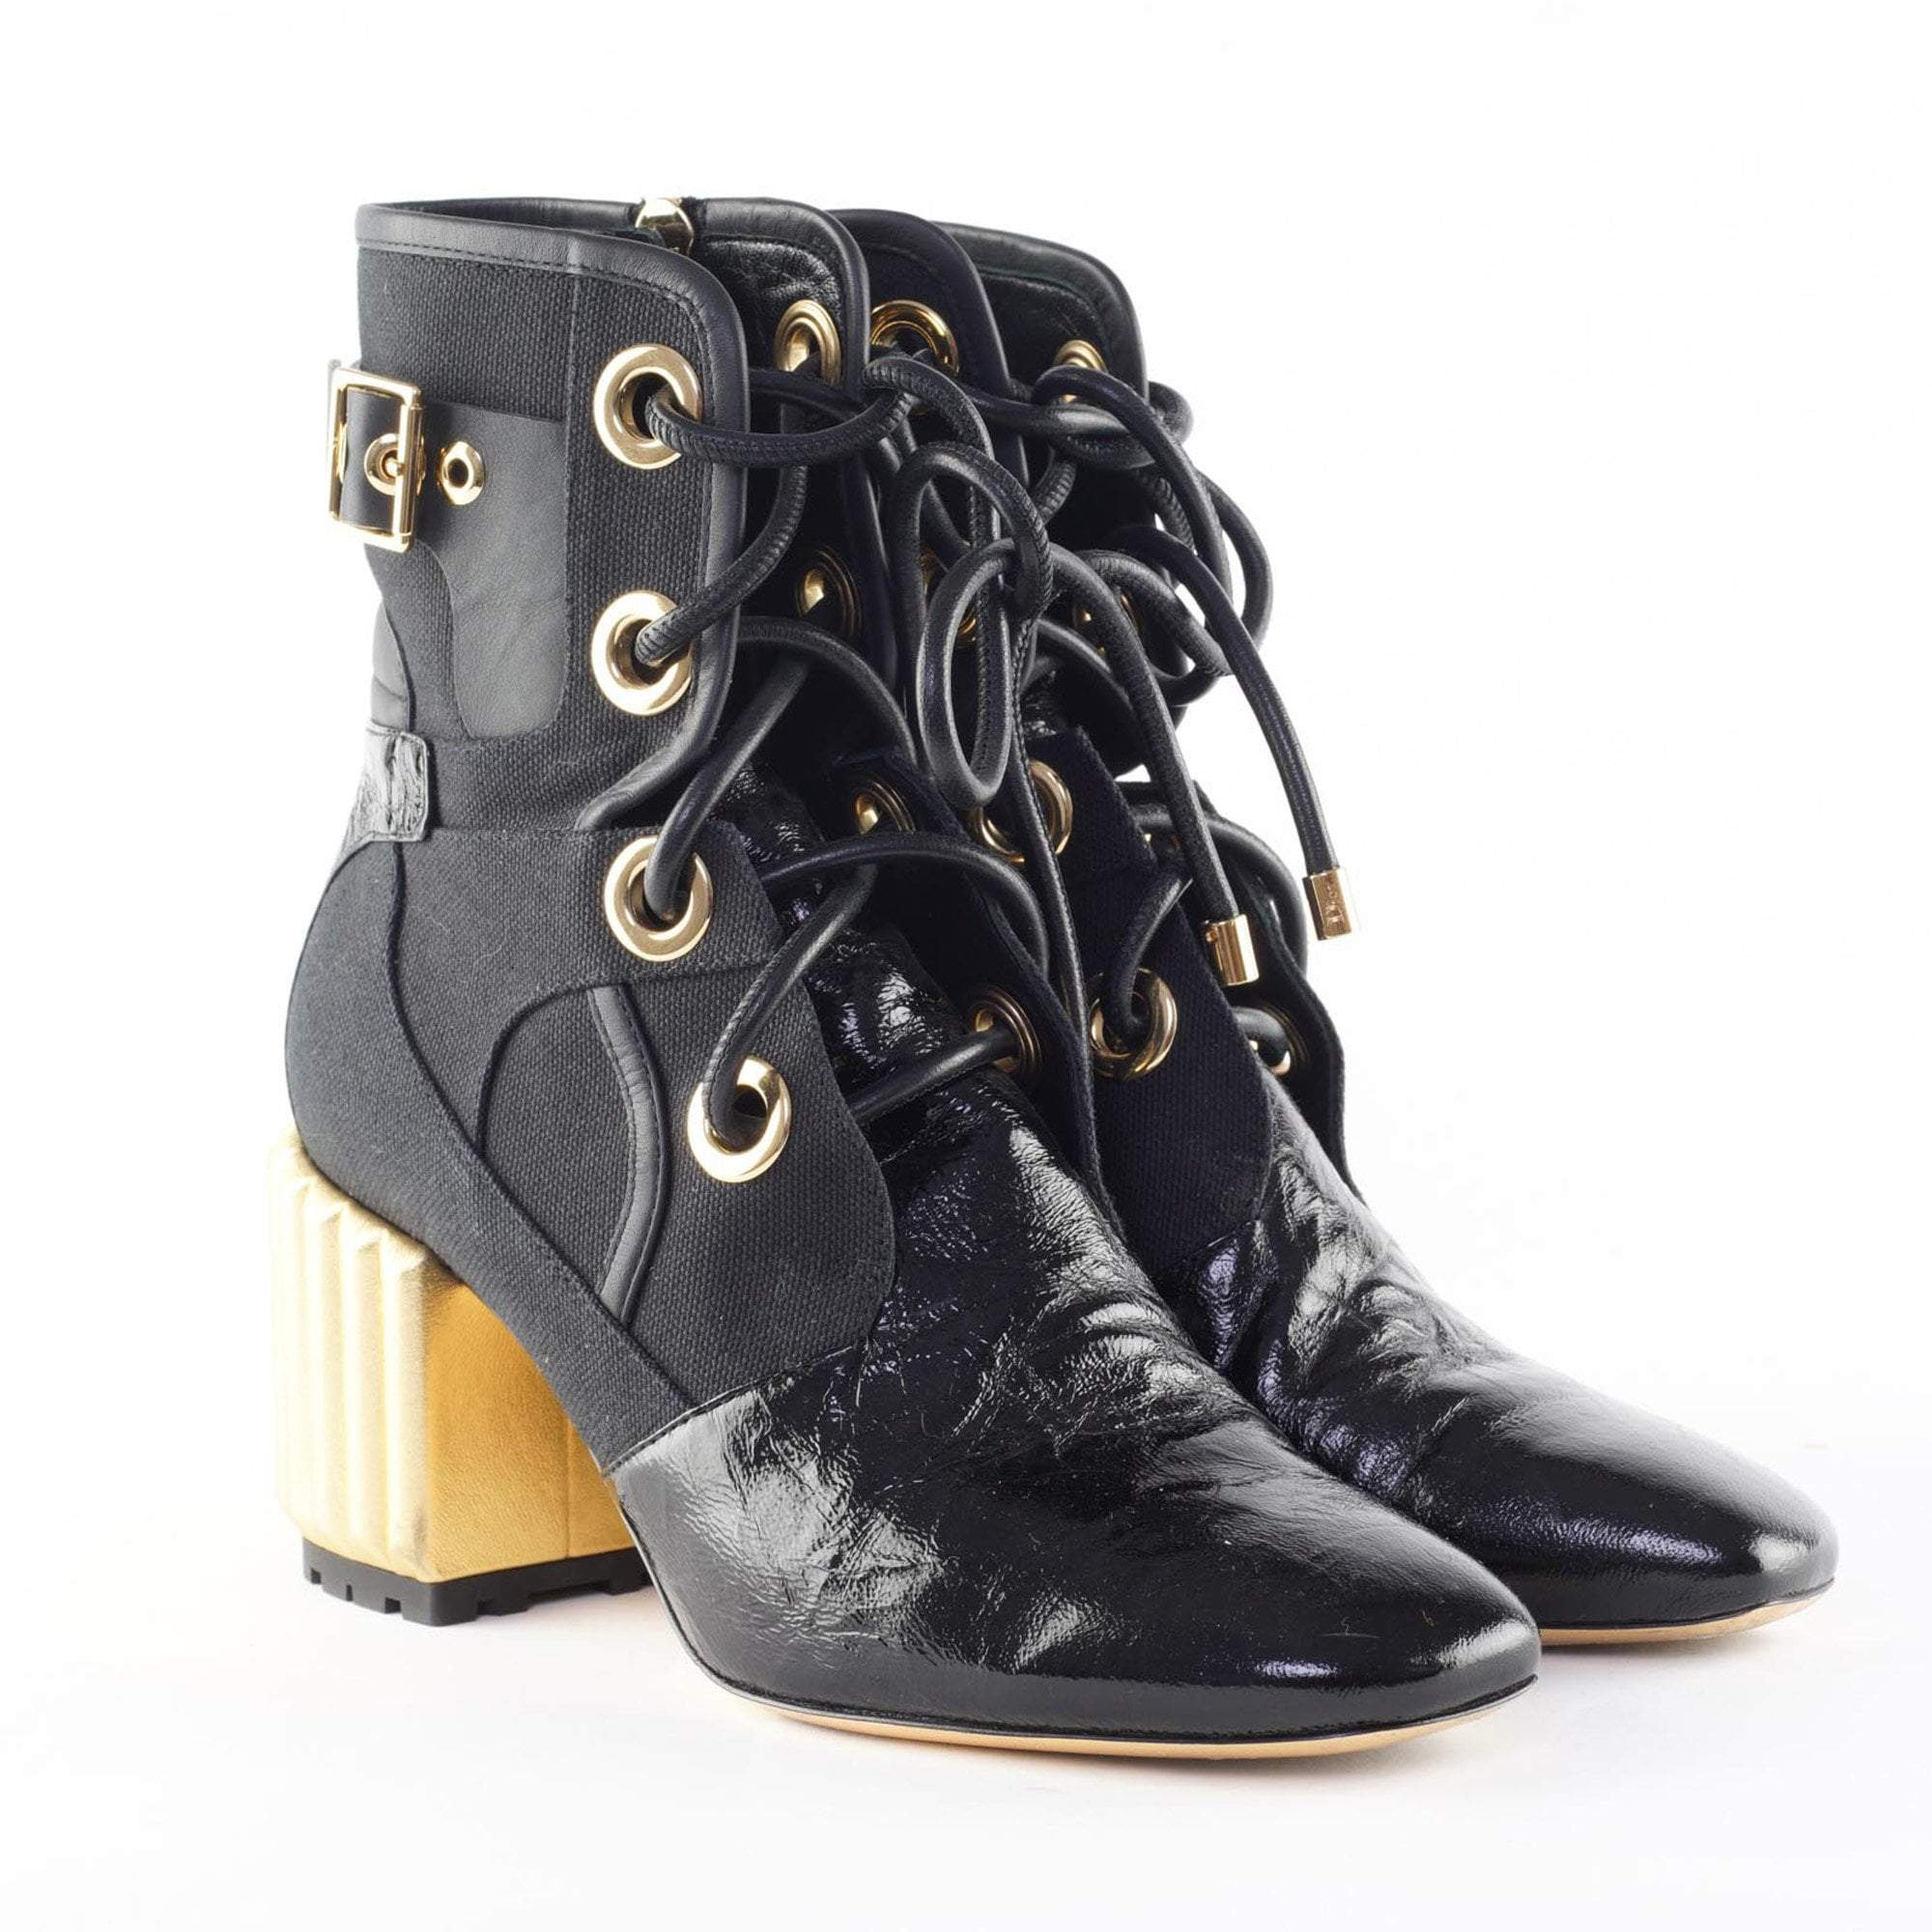 Dior 39.5 Leather Ankle botas 39.5 Dior - Brand New 243ac2